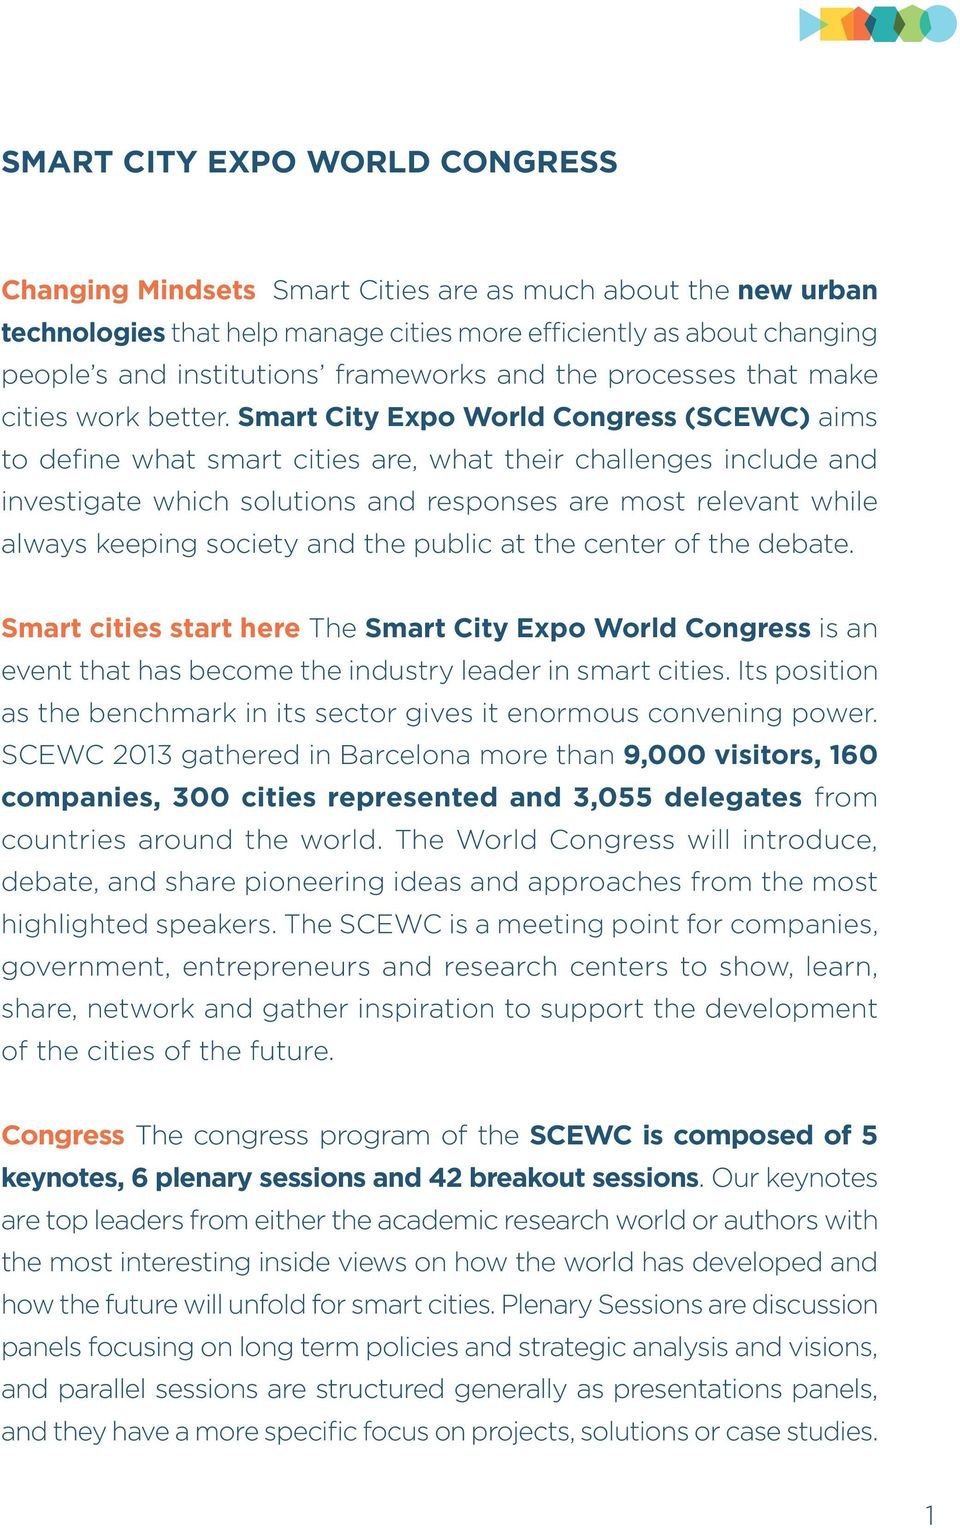 Smart City Expo World Congress (SCEWC) aims to define what smart cities are, what their challenges include and investigate which solutions and responses are most relevant while always keeping society